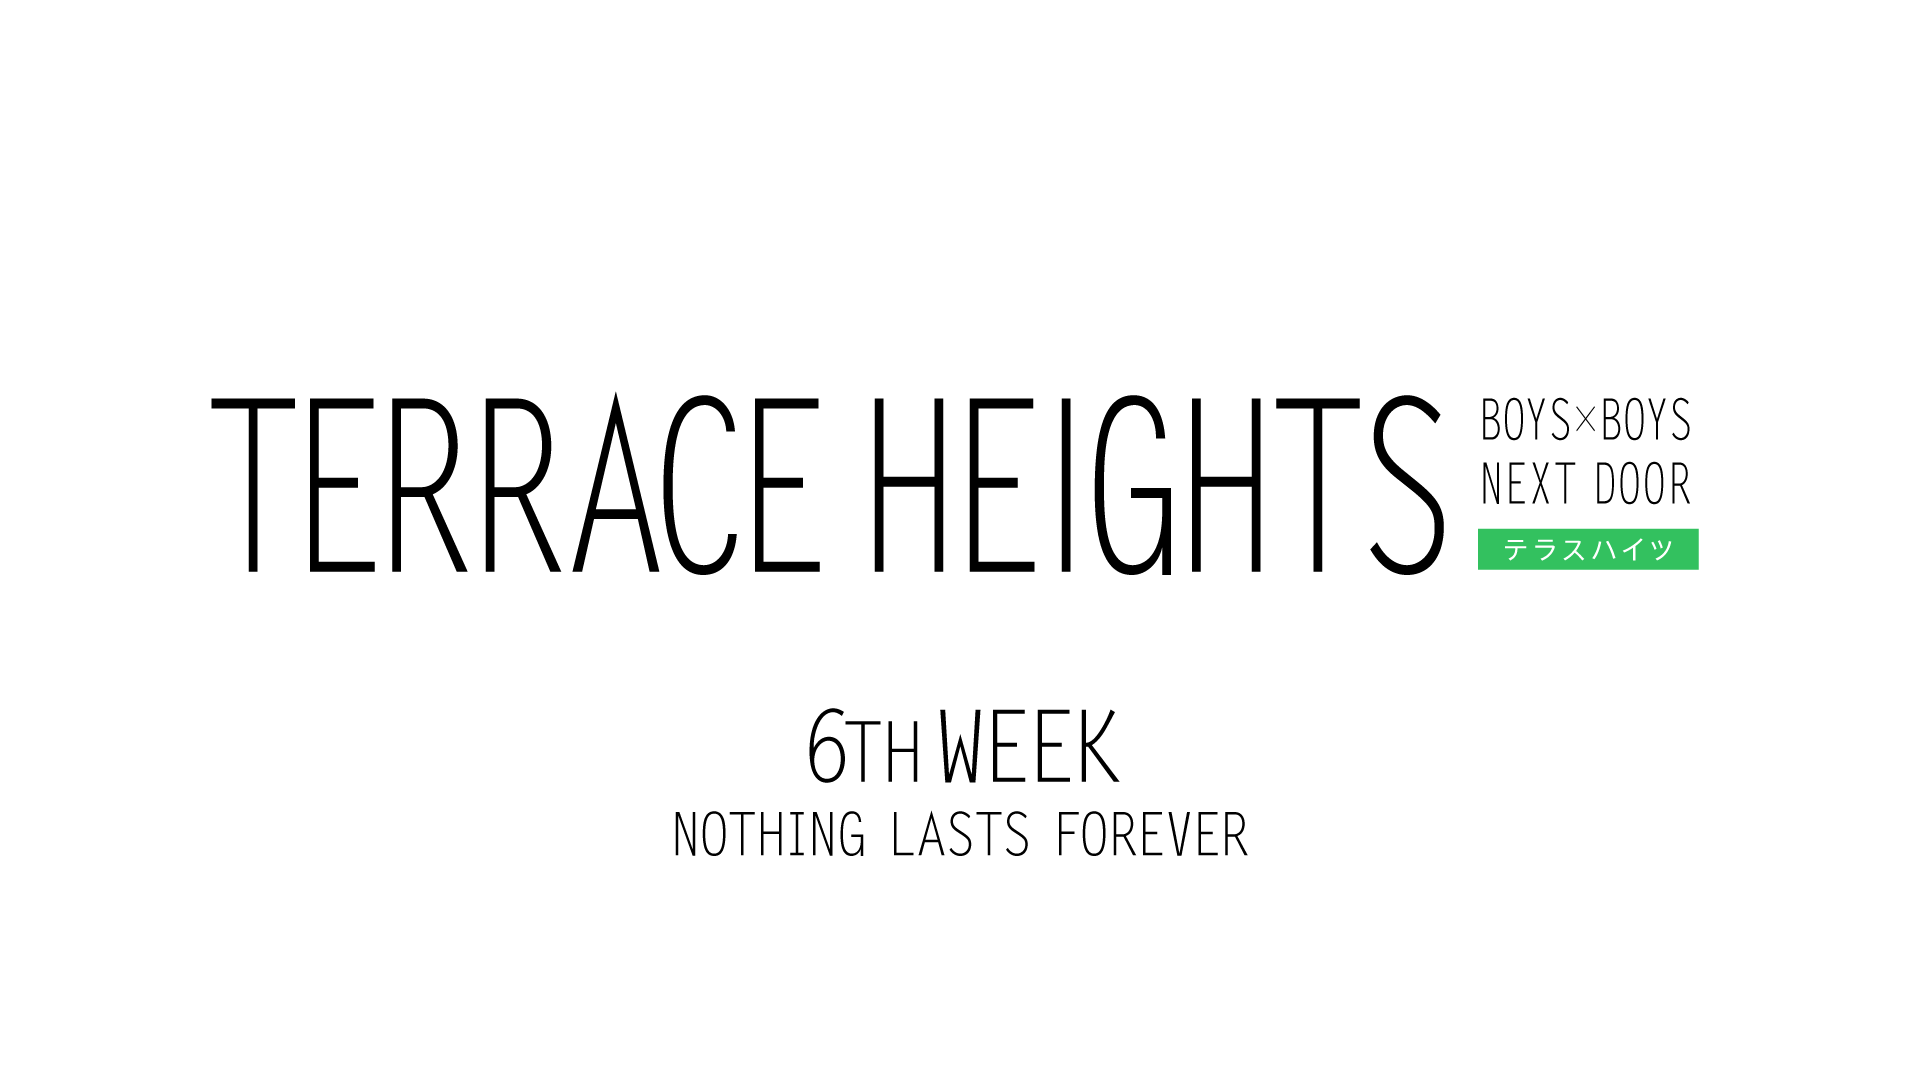 TERRACE HEIGHTS 6th WEEK